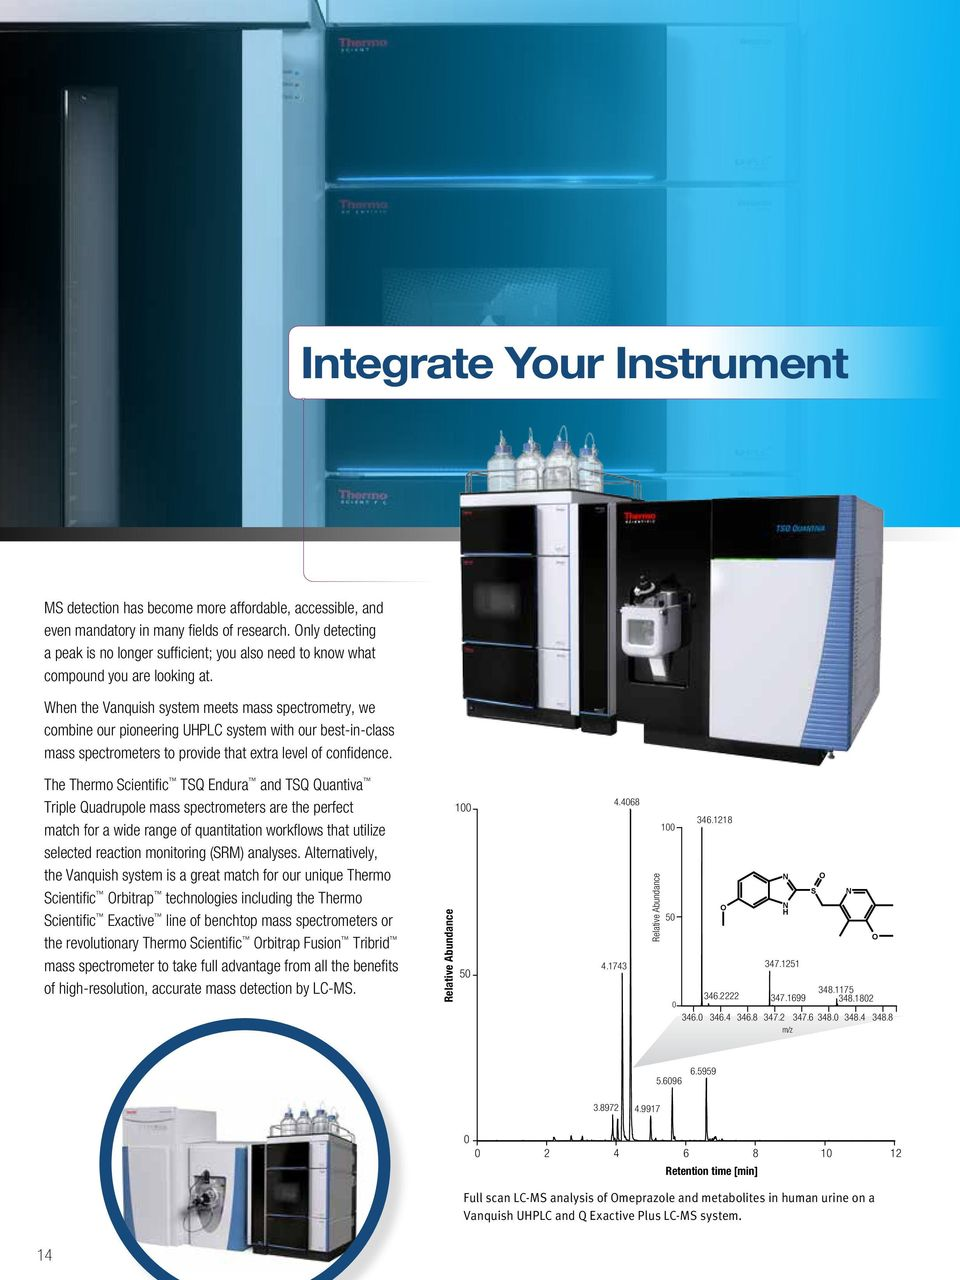 When the Vanquish system meets mass spectrometry, we combine our pioneering UHPLC system with our best-in-class mass spectrometers to provide that extra level of confidence.